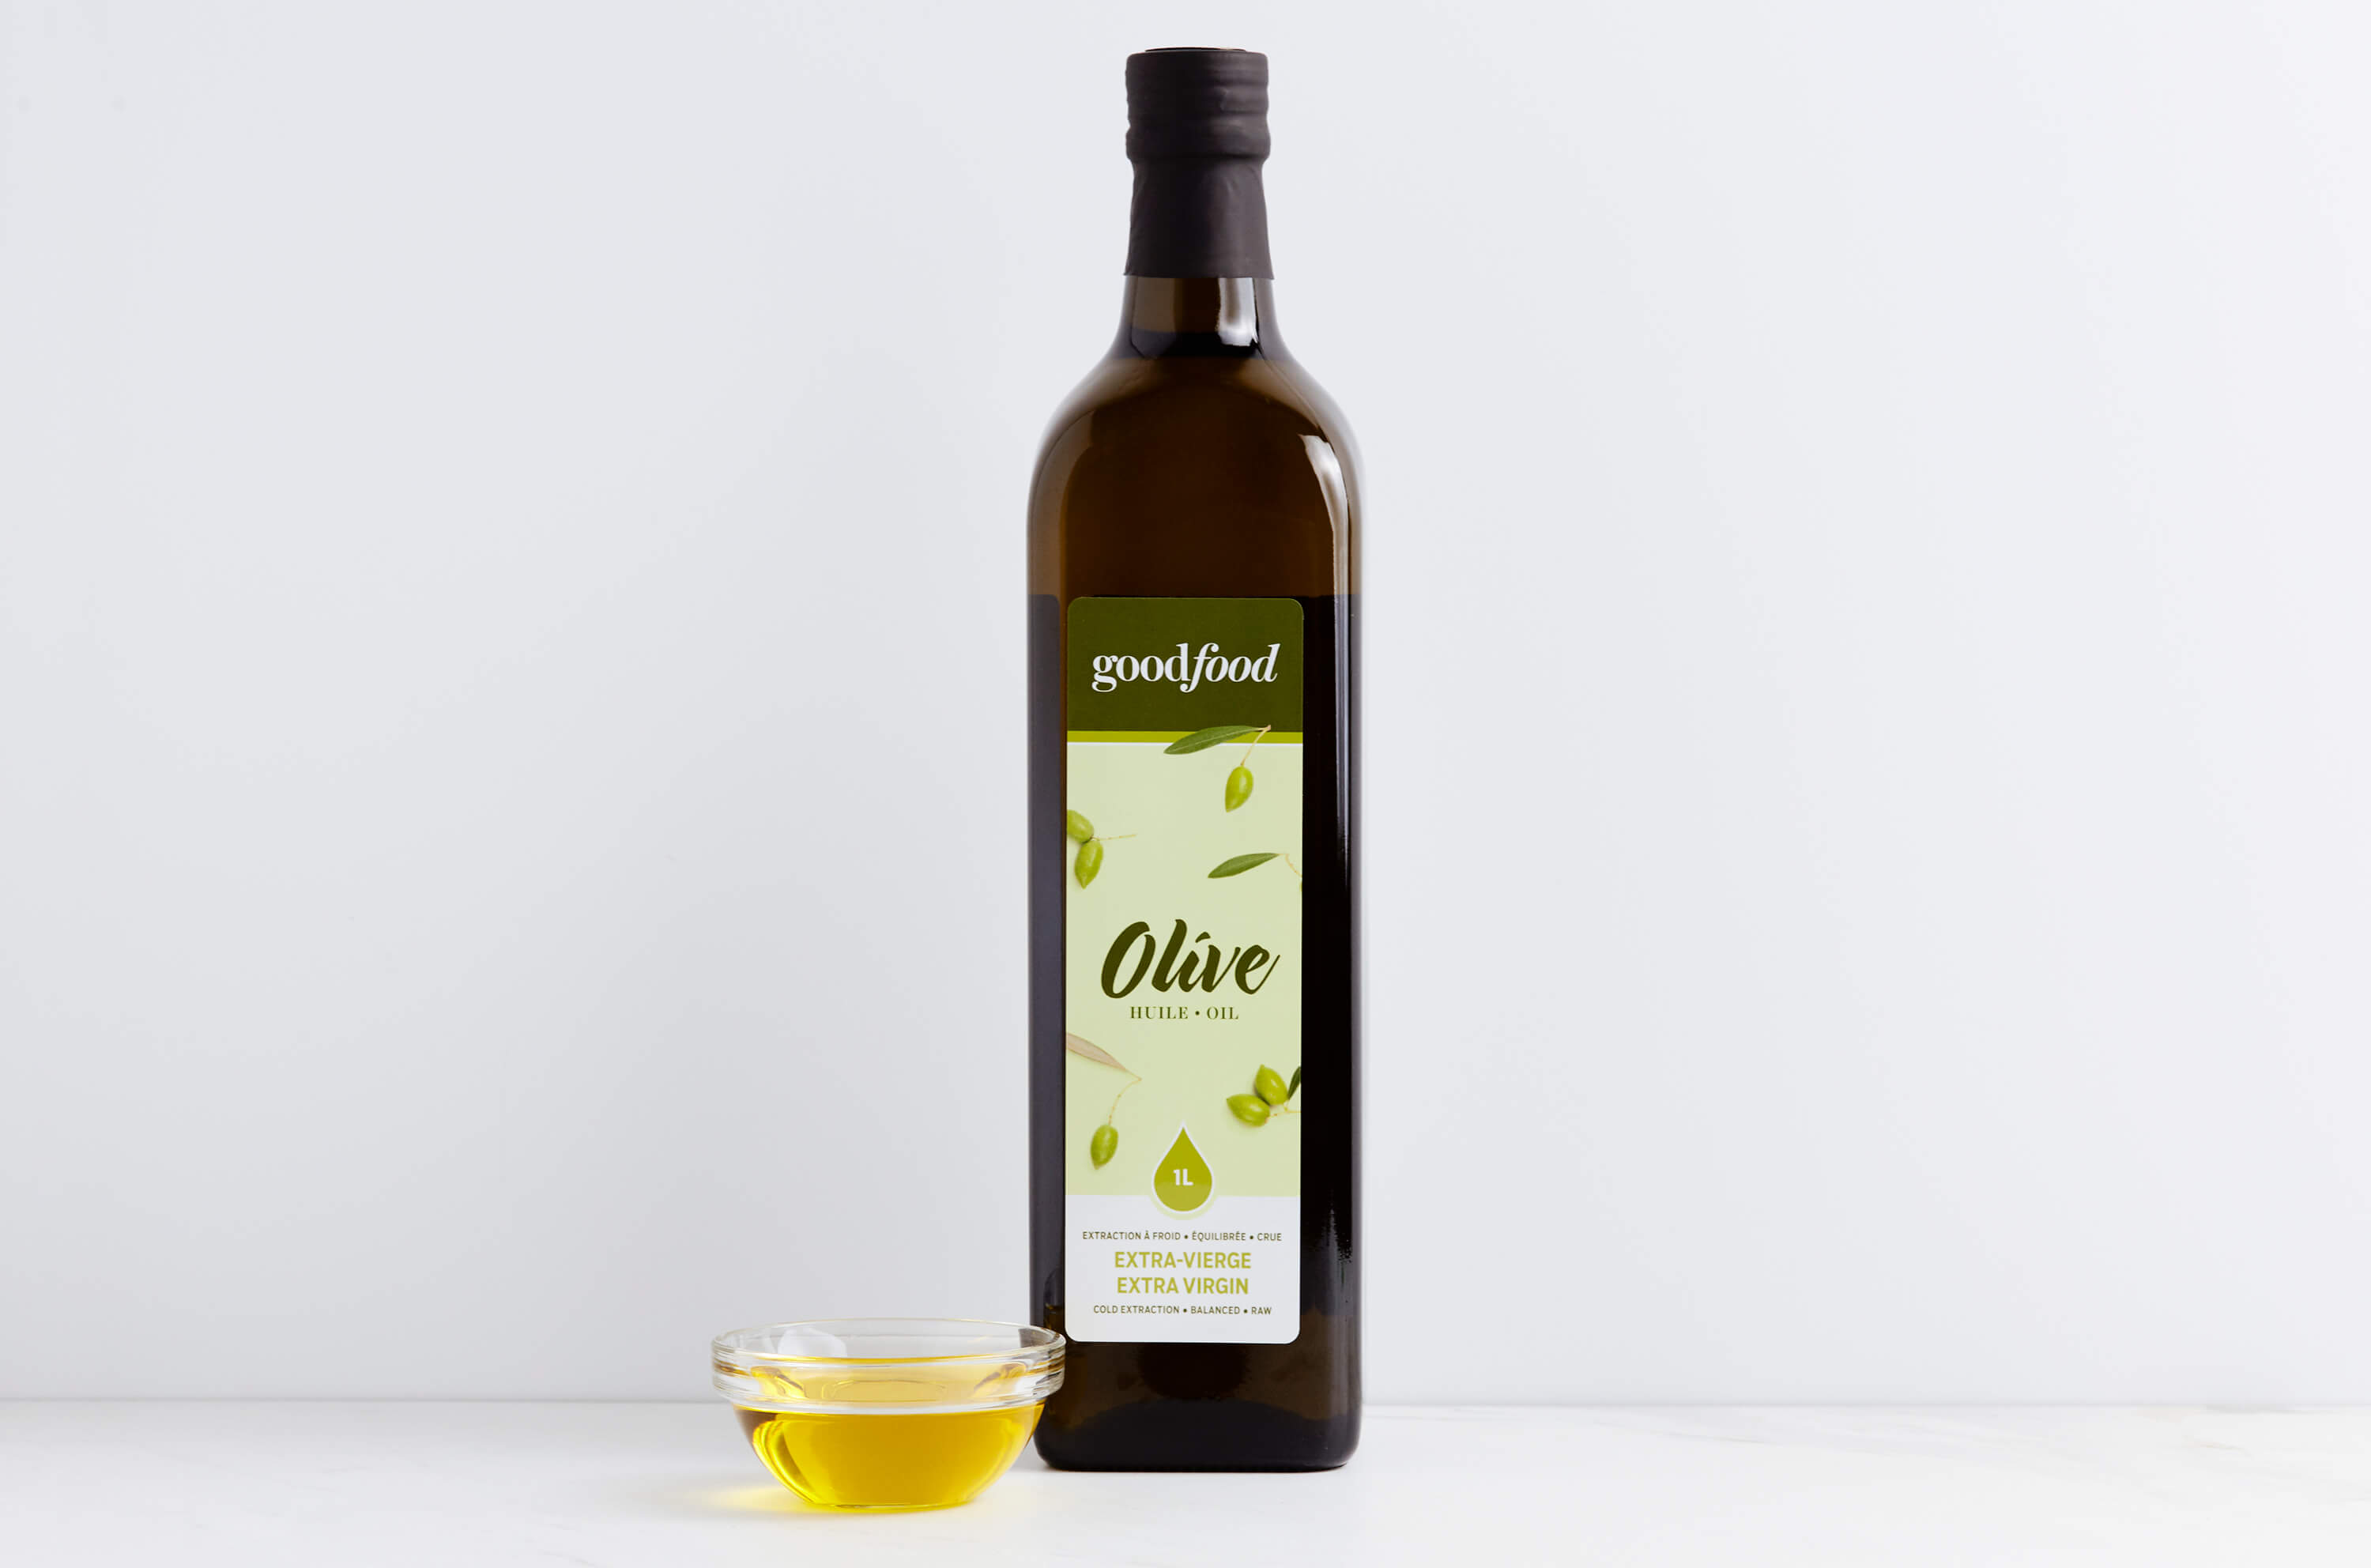 A bottle of Goodfood extra virgin olive oil